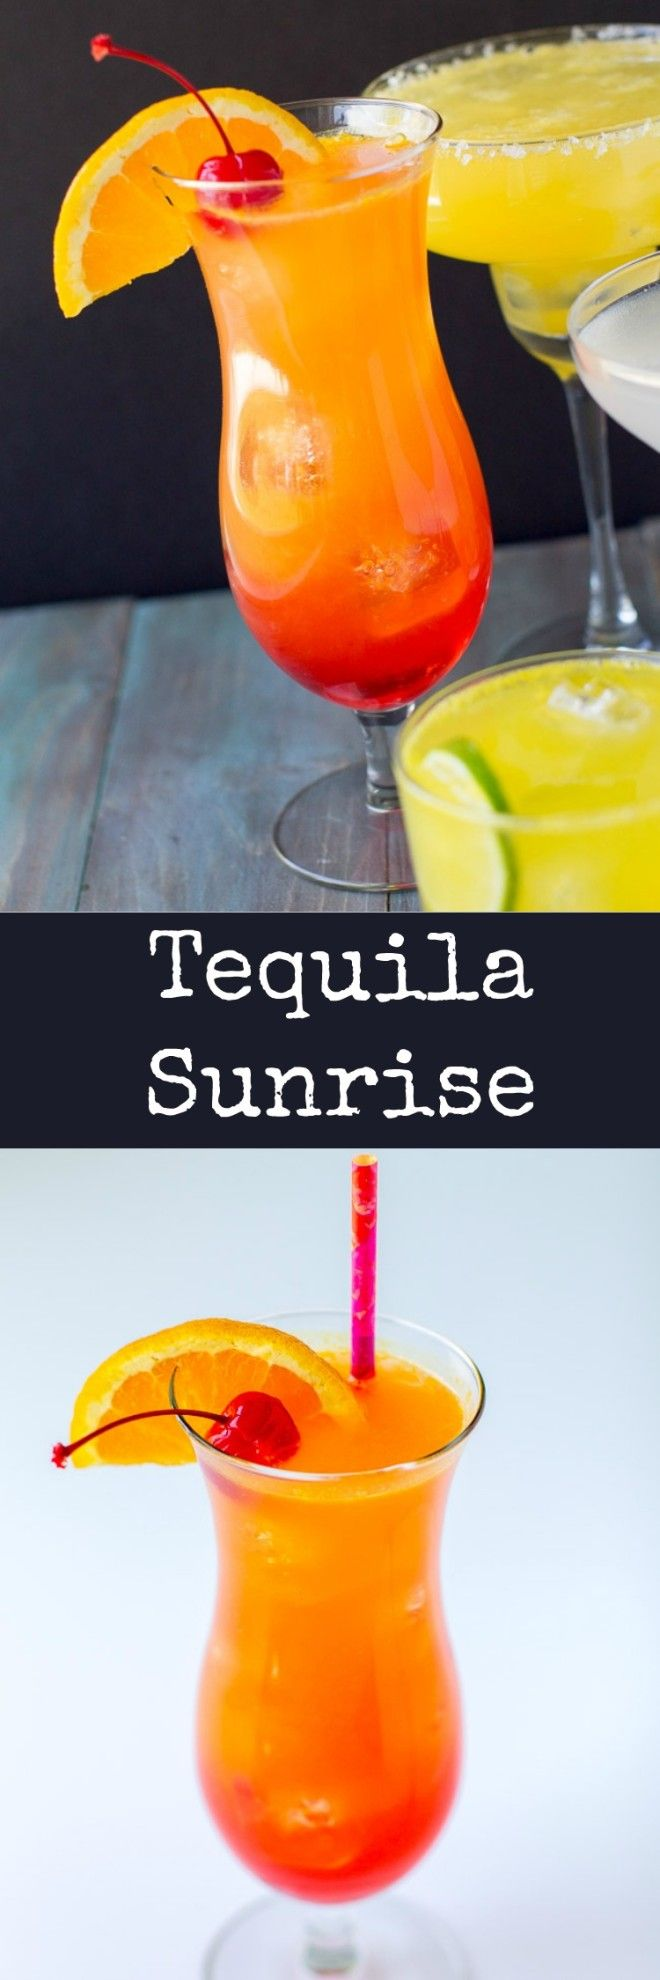 "A super fruity and colorful Tequila Sunrise cocktail with a splash of seltzer for sparkle! Leave it unmixed for a beautiful ""sunrise"" appearance."